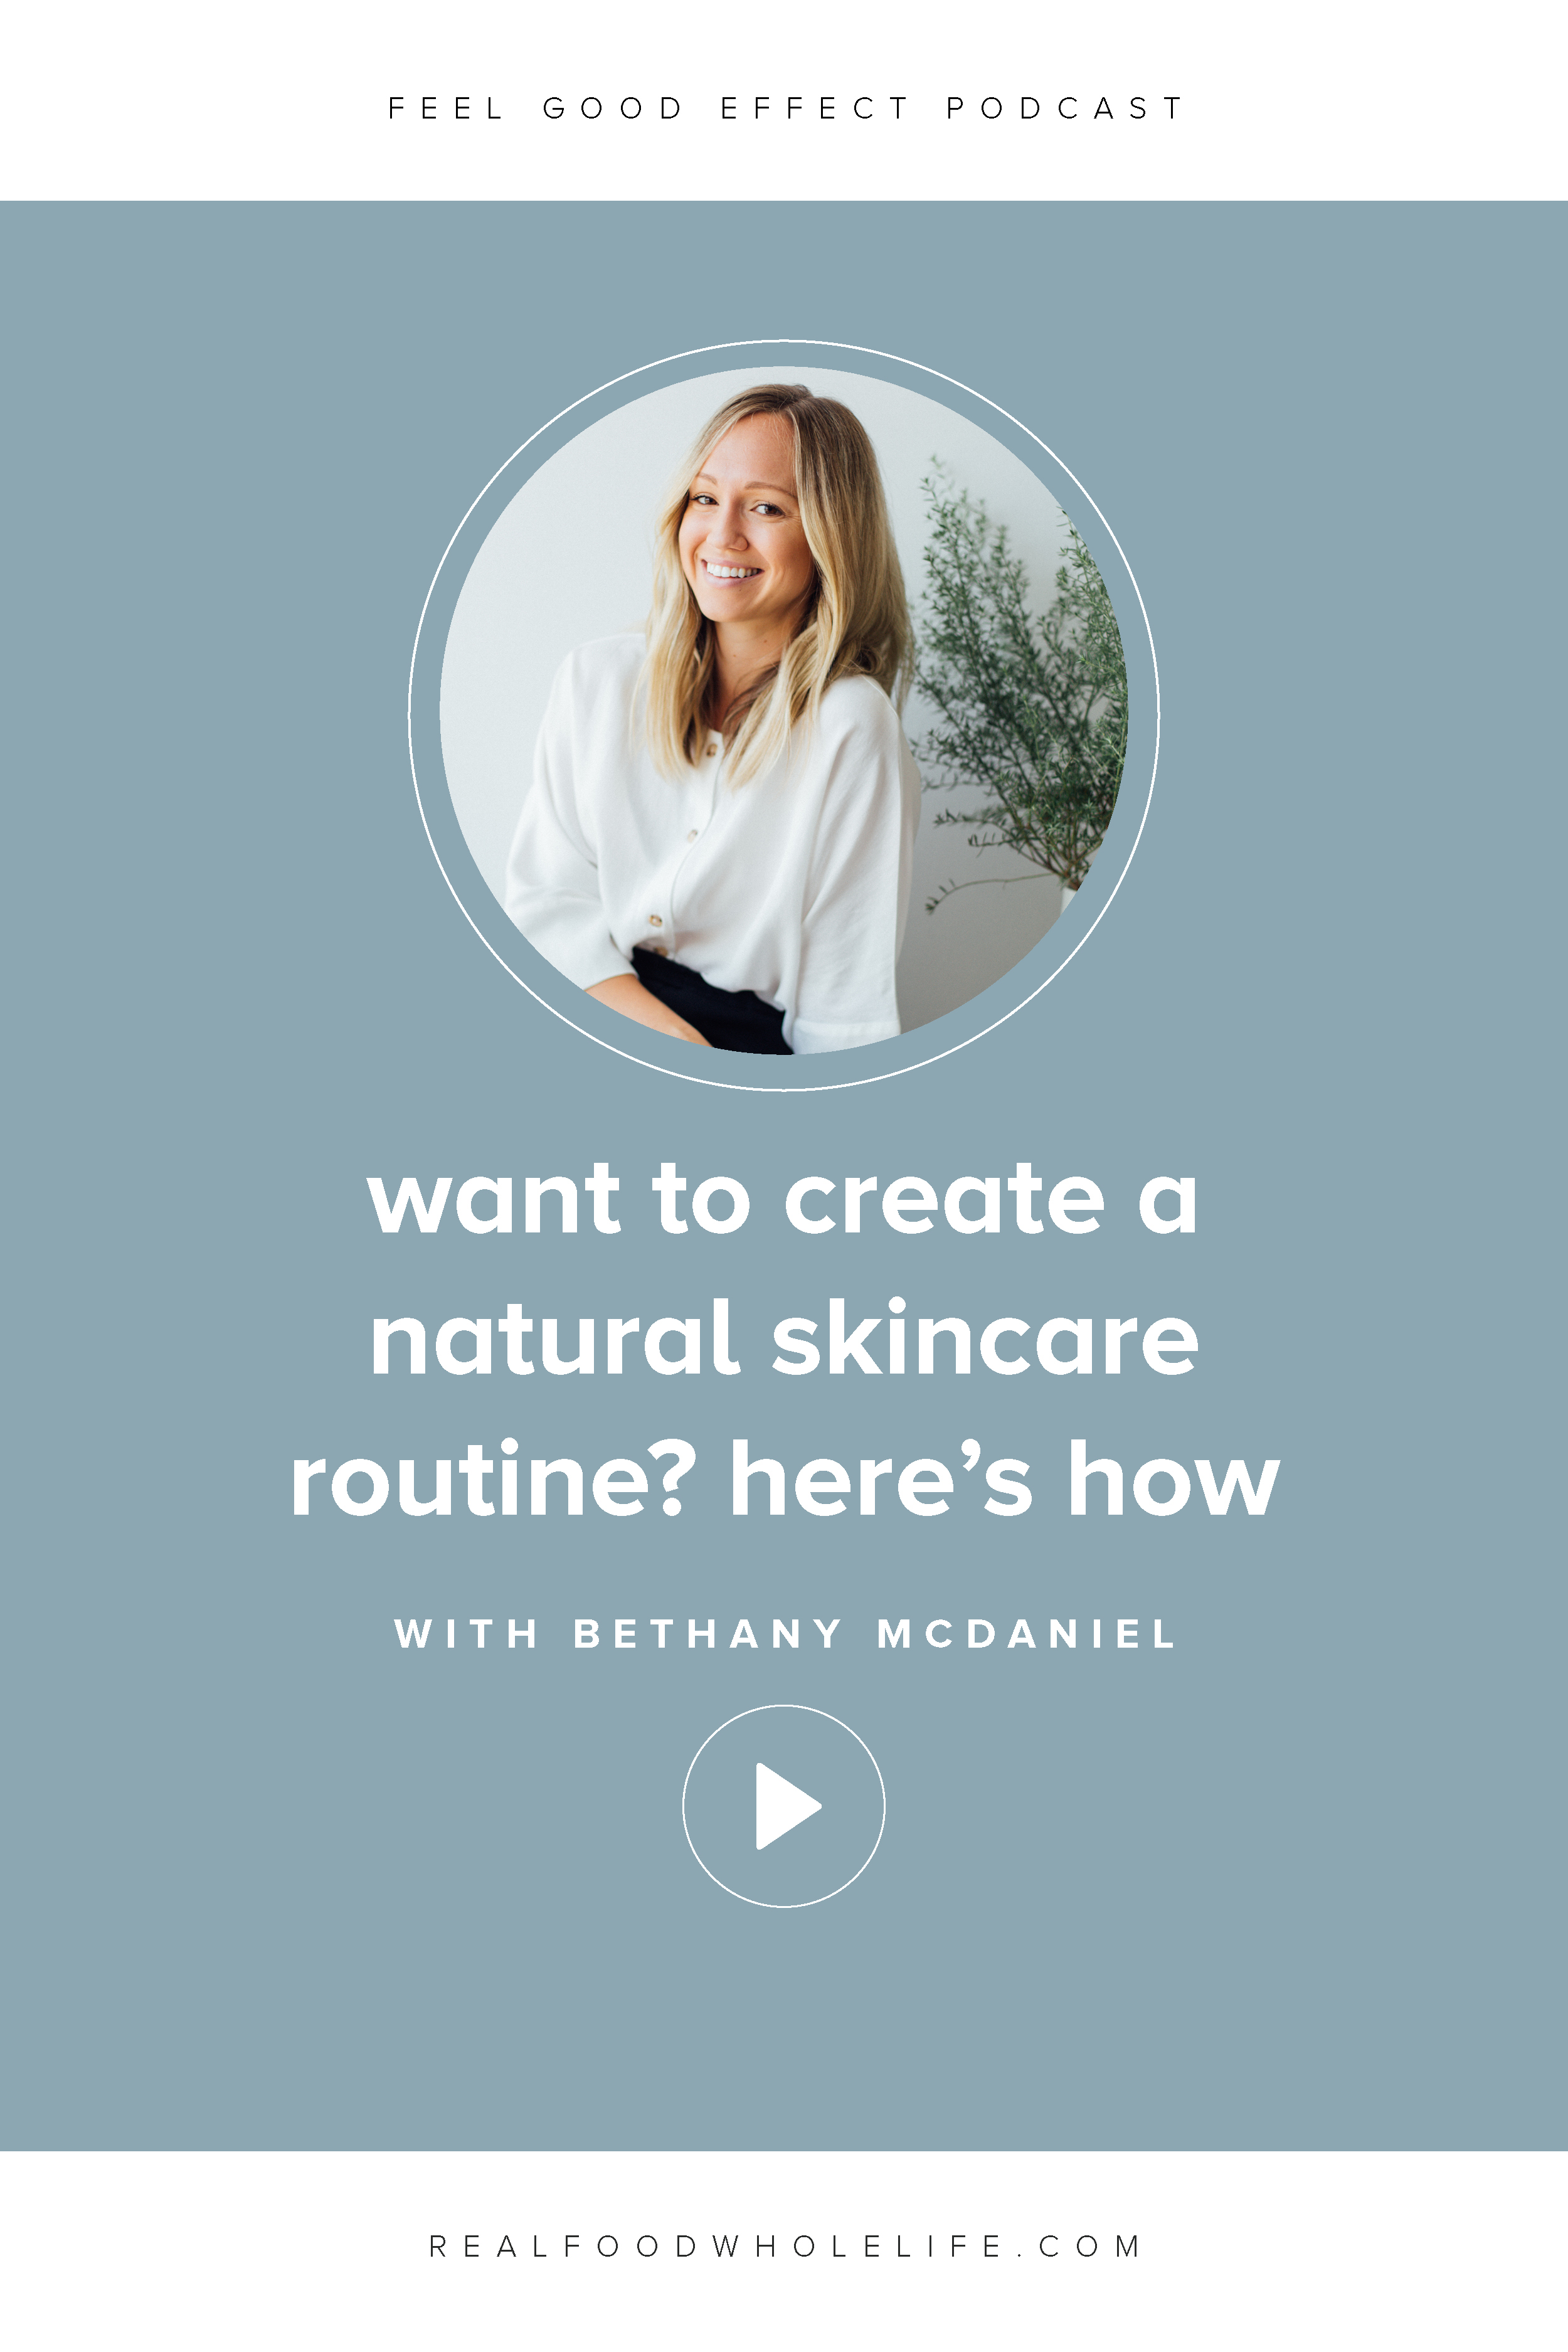 Create a natural, nontoxic, clean skincare routine, with Bethany McDaniel of Primally Pure. #realfoodwholelife #feelgoodeffectpodcast #podcast #nontoxic #cleanbeauty #naturalbeauty